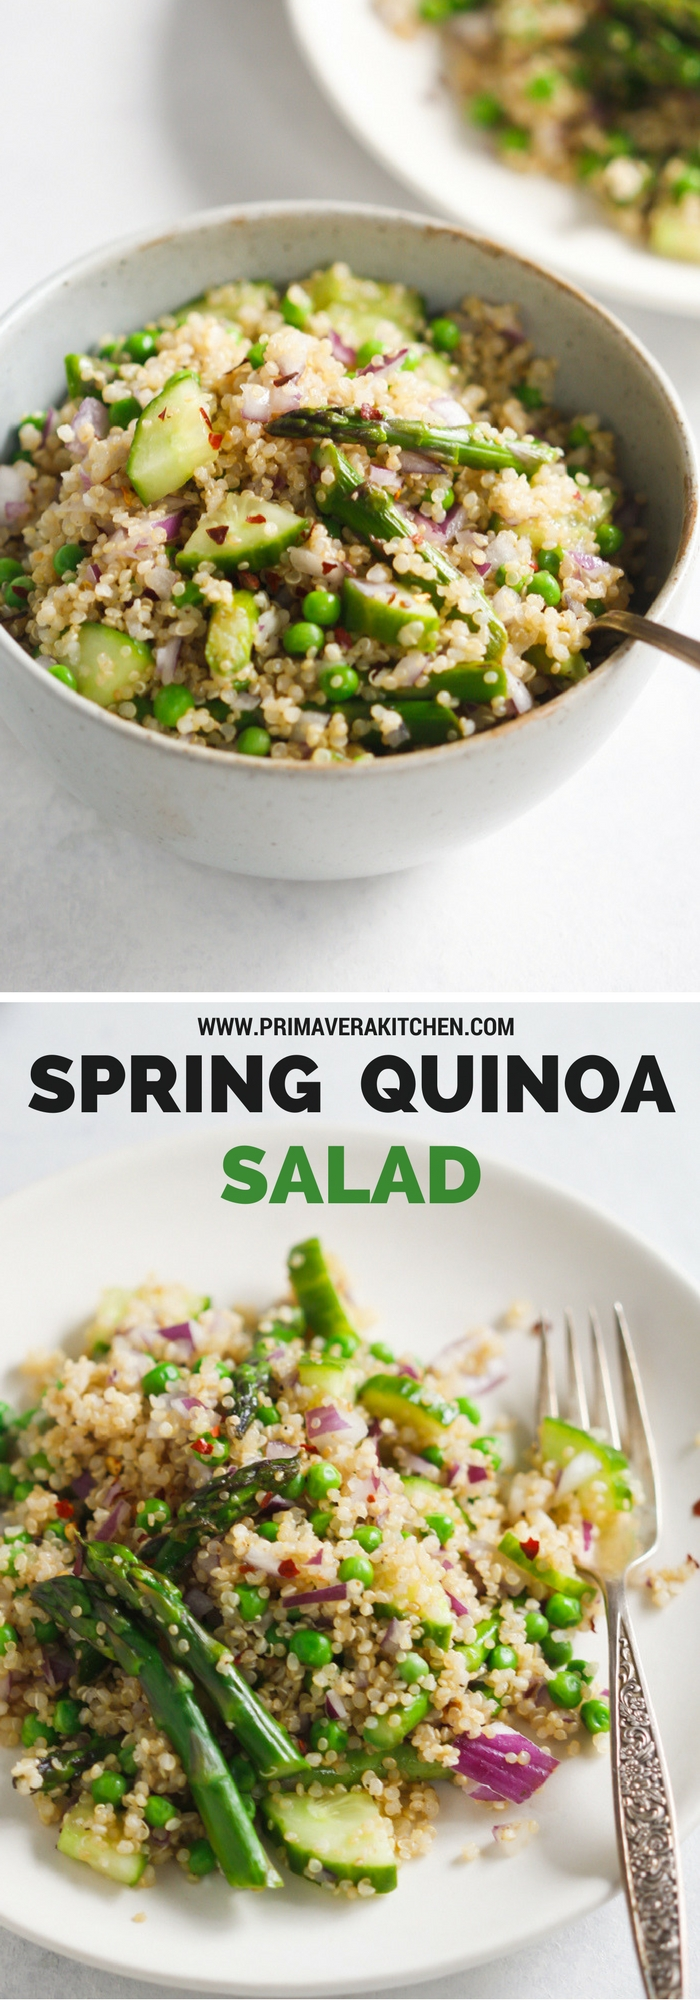 Spring Quinoa Salad - This Spring Quinoa Salad is loaded with asparagus, peas, cucumber, red onions and with an easy and delicious homemade vinaigrette. | www.primaverakitchen.com